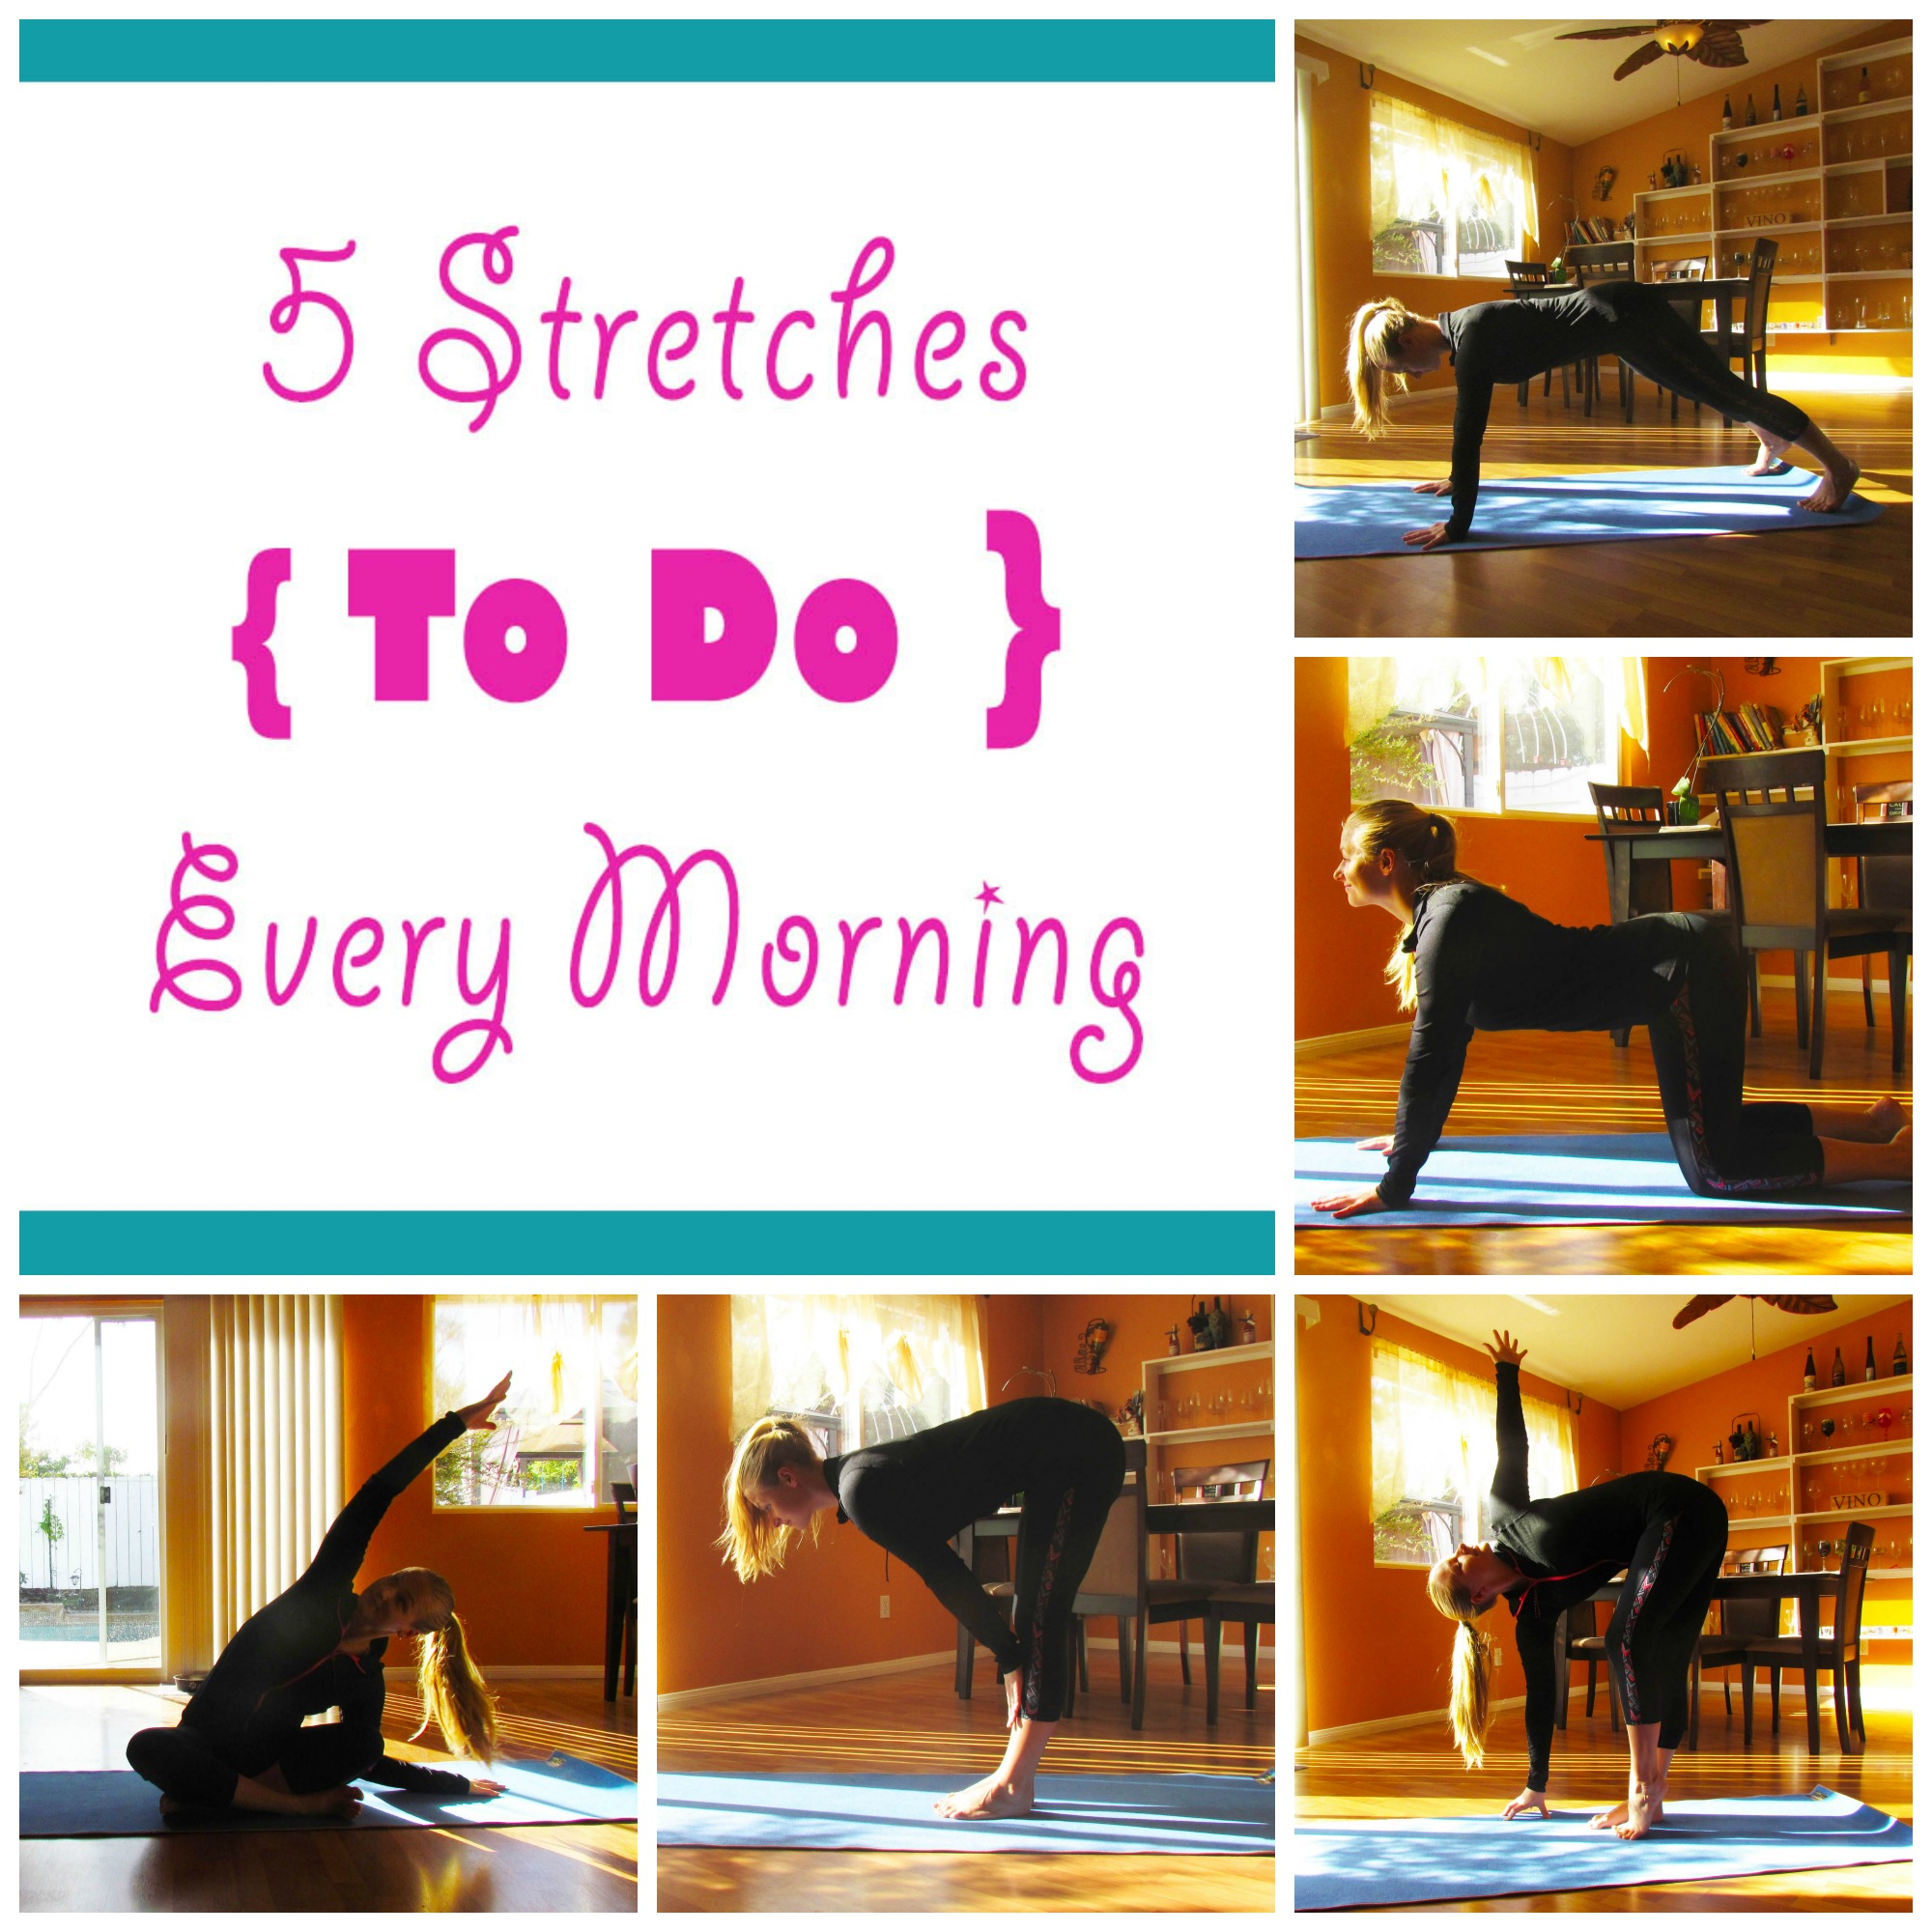 5 Stretches To Do Every AM